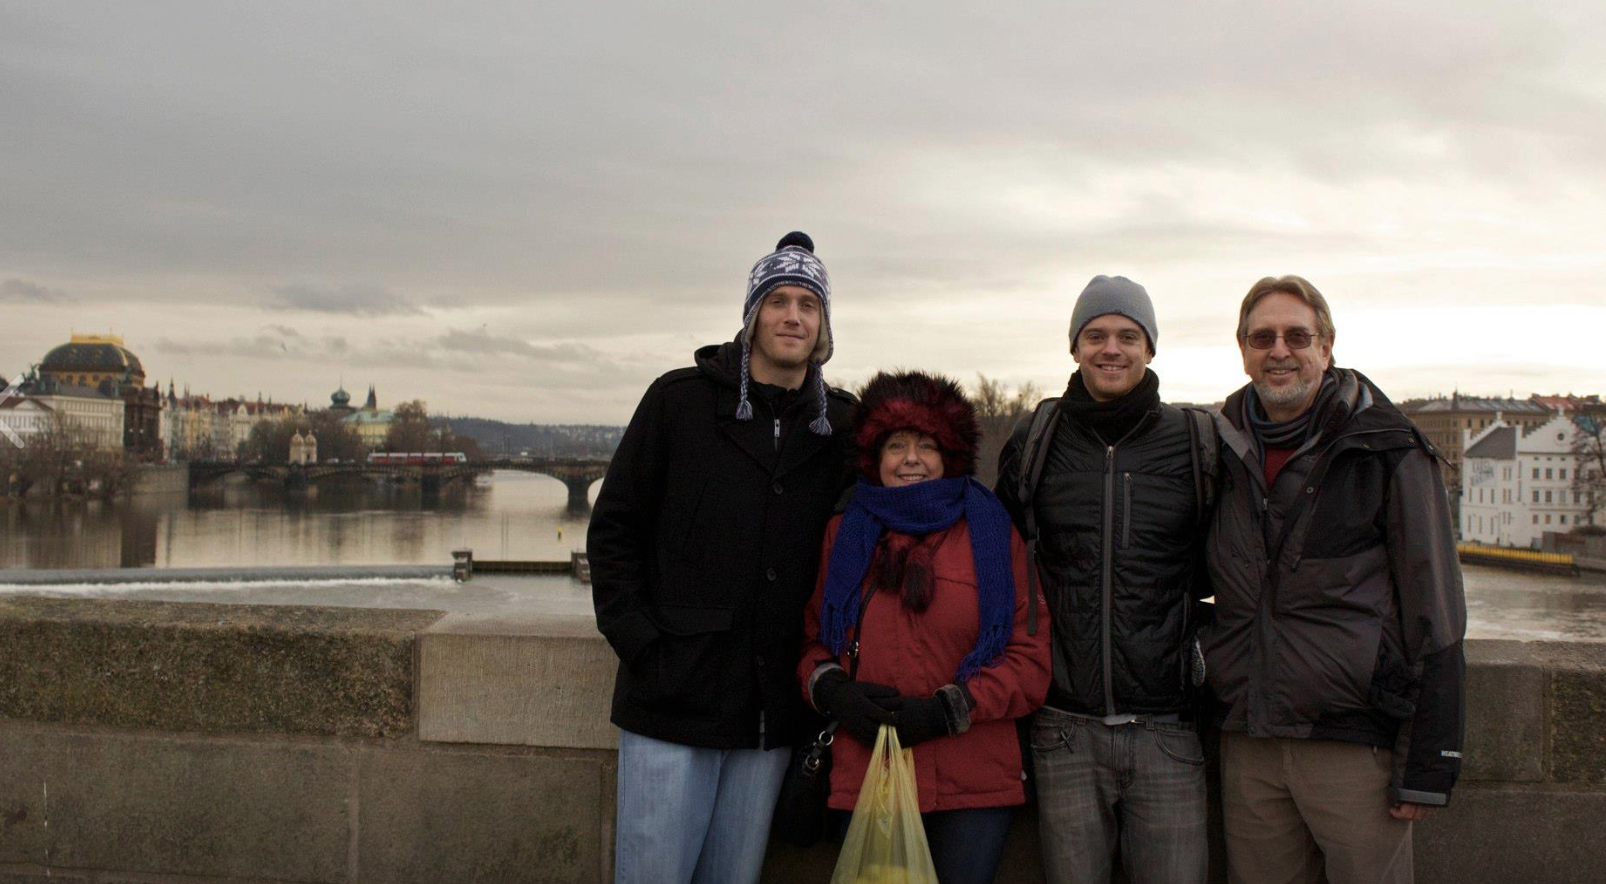 Throwback from my year living in Prague - a holiday visit from the fam